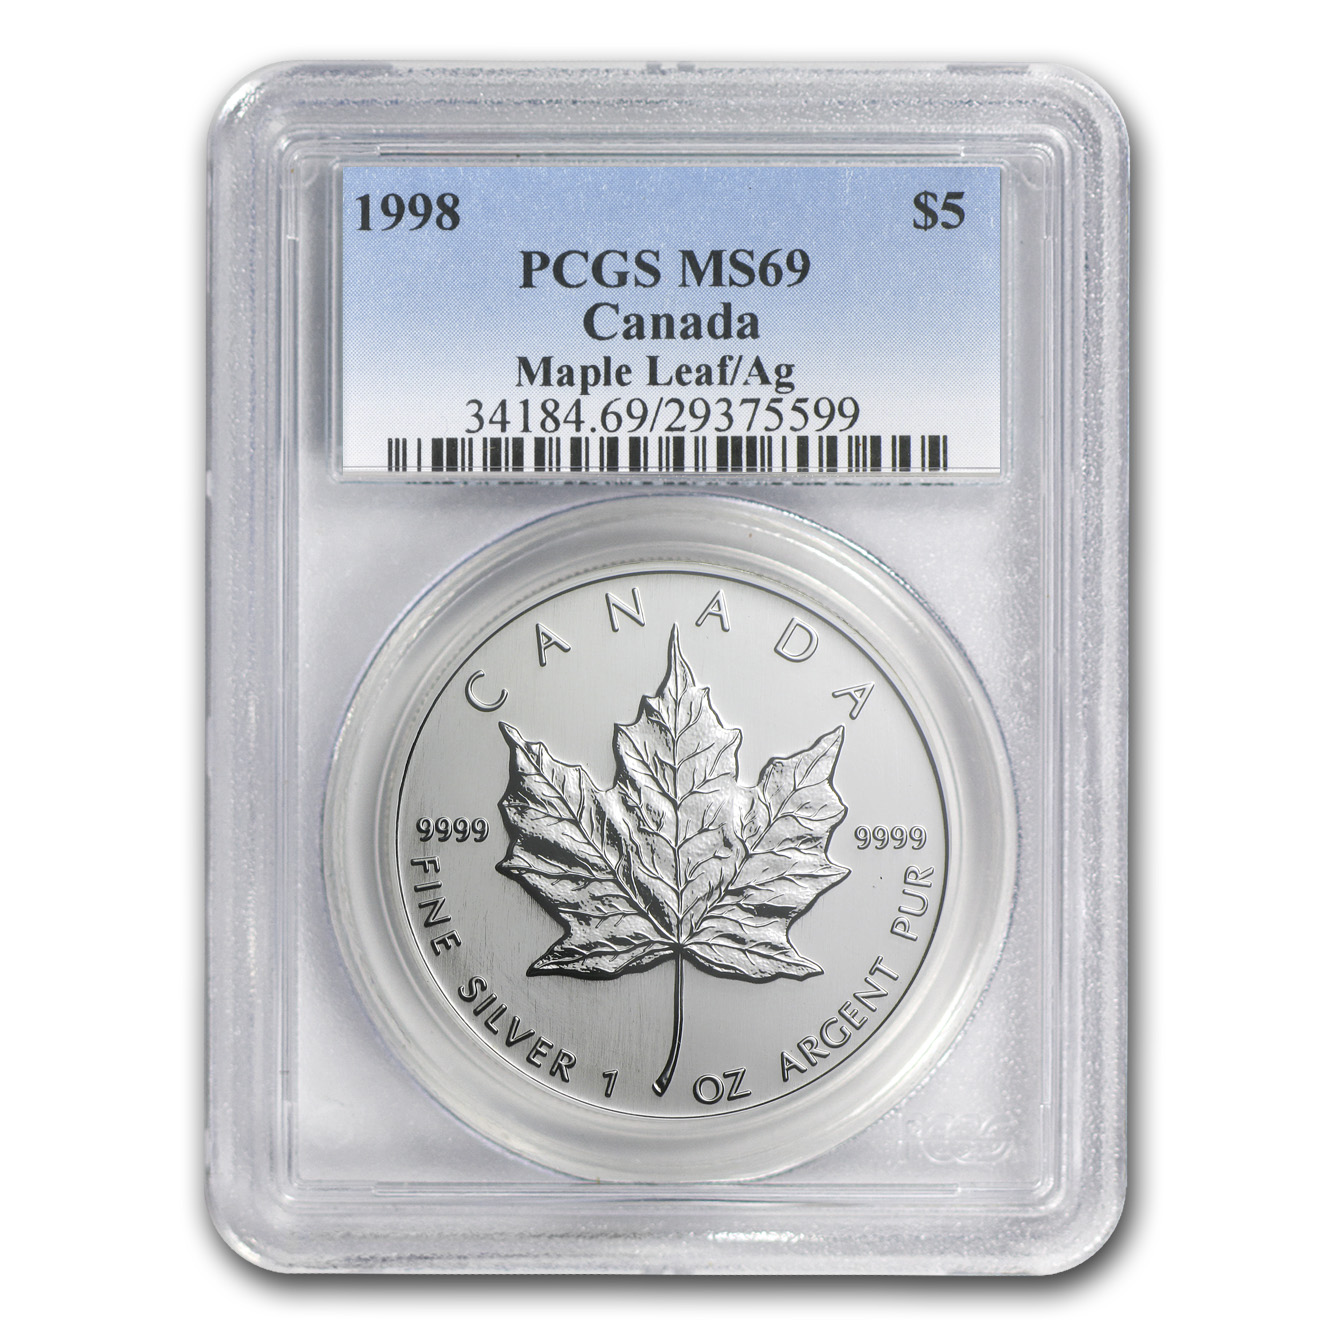 1998 Canada 1 oz Silver Maple Leaf MS-69 PCGS